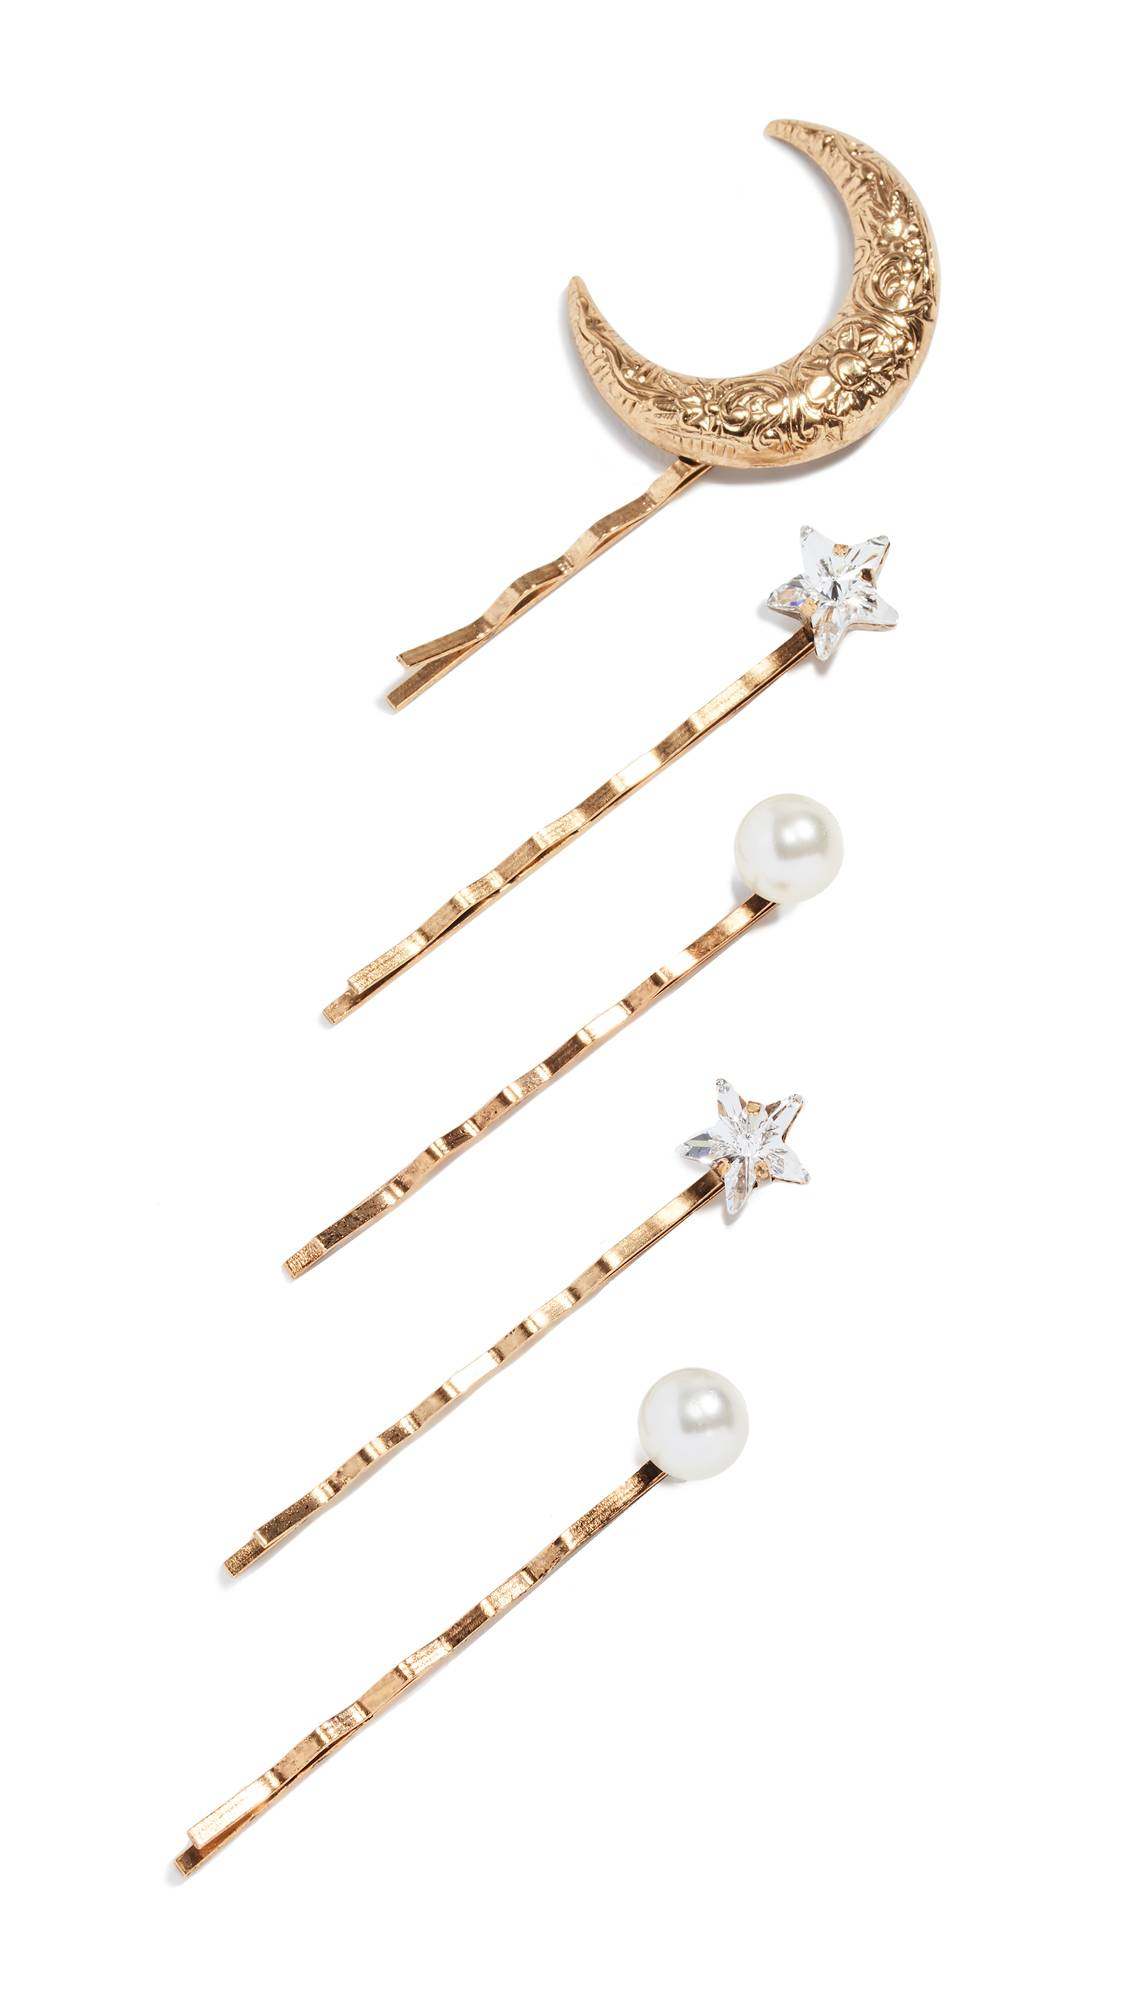 Jennifer Behr Oberon Bobby Pin Set of 5  - Crystal/Antique Gold - Size: One Size